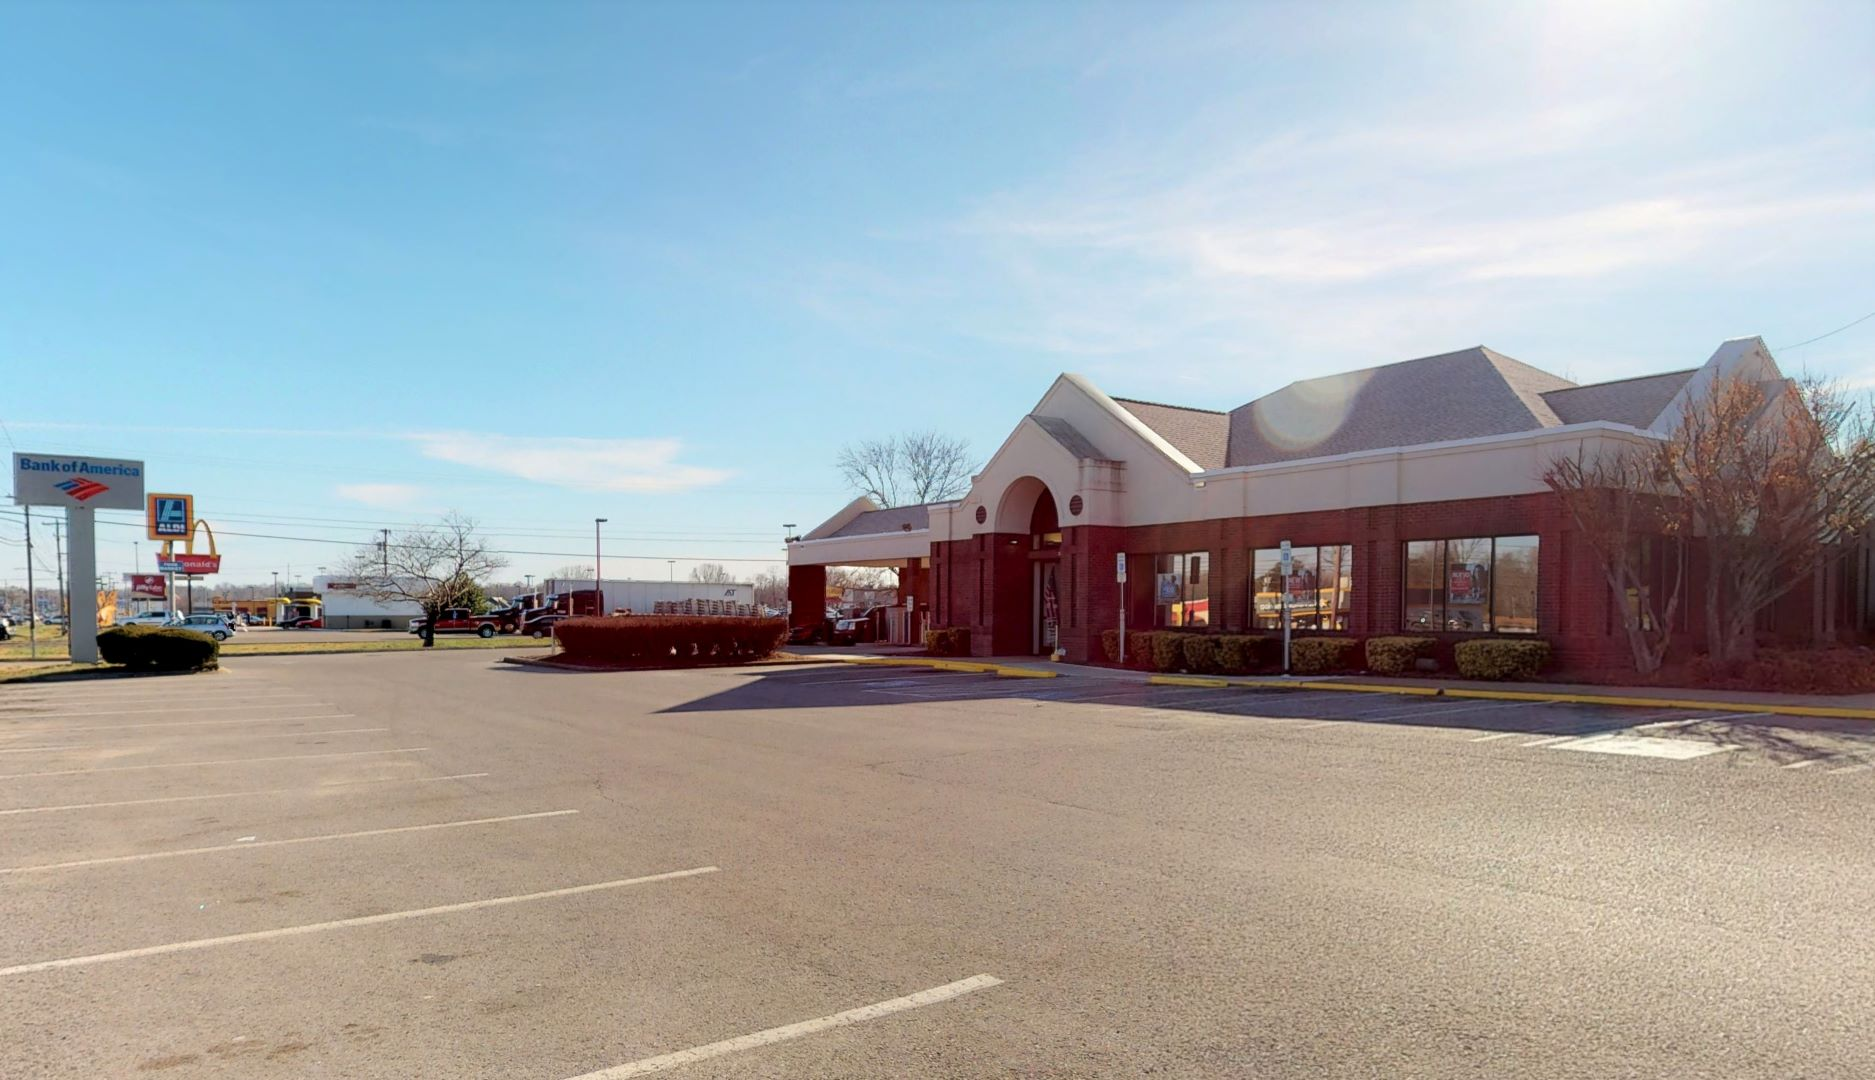 Bank of America financial center with drive-thru ATM | 1648 Fort Campbell Blvd, Clarksville, TN 37042